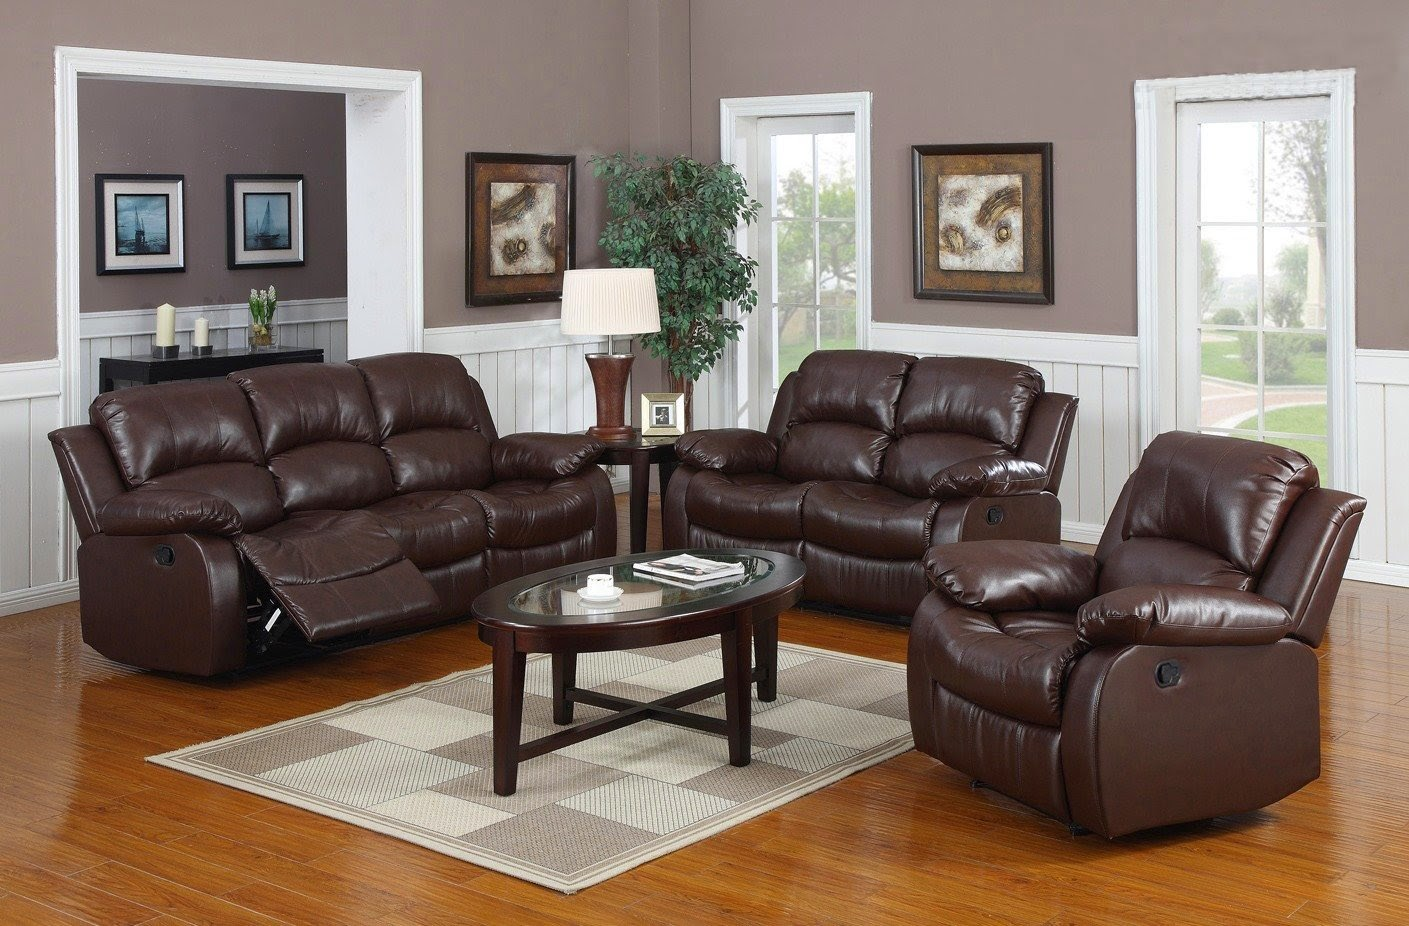 Cheap reclining sofas sale leather reclining sofa costco Reclining leather sofa and loveseat